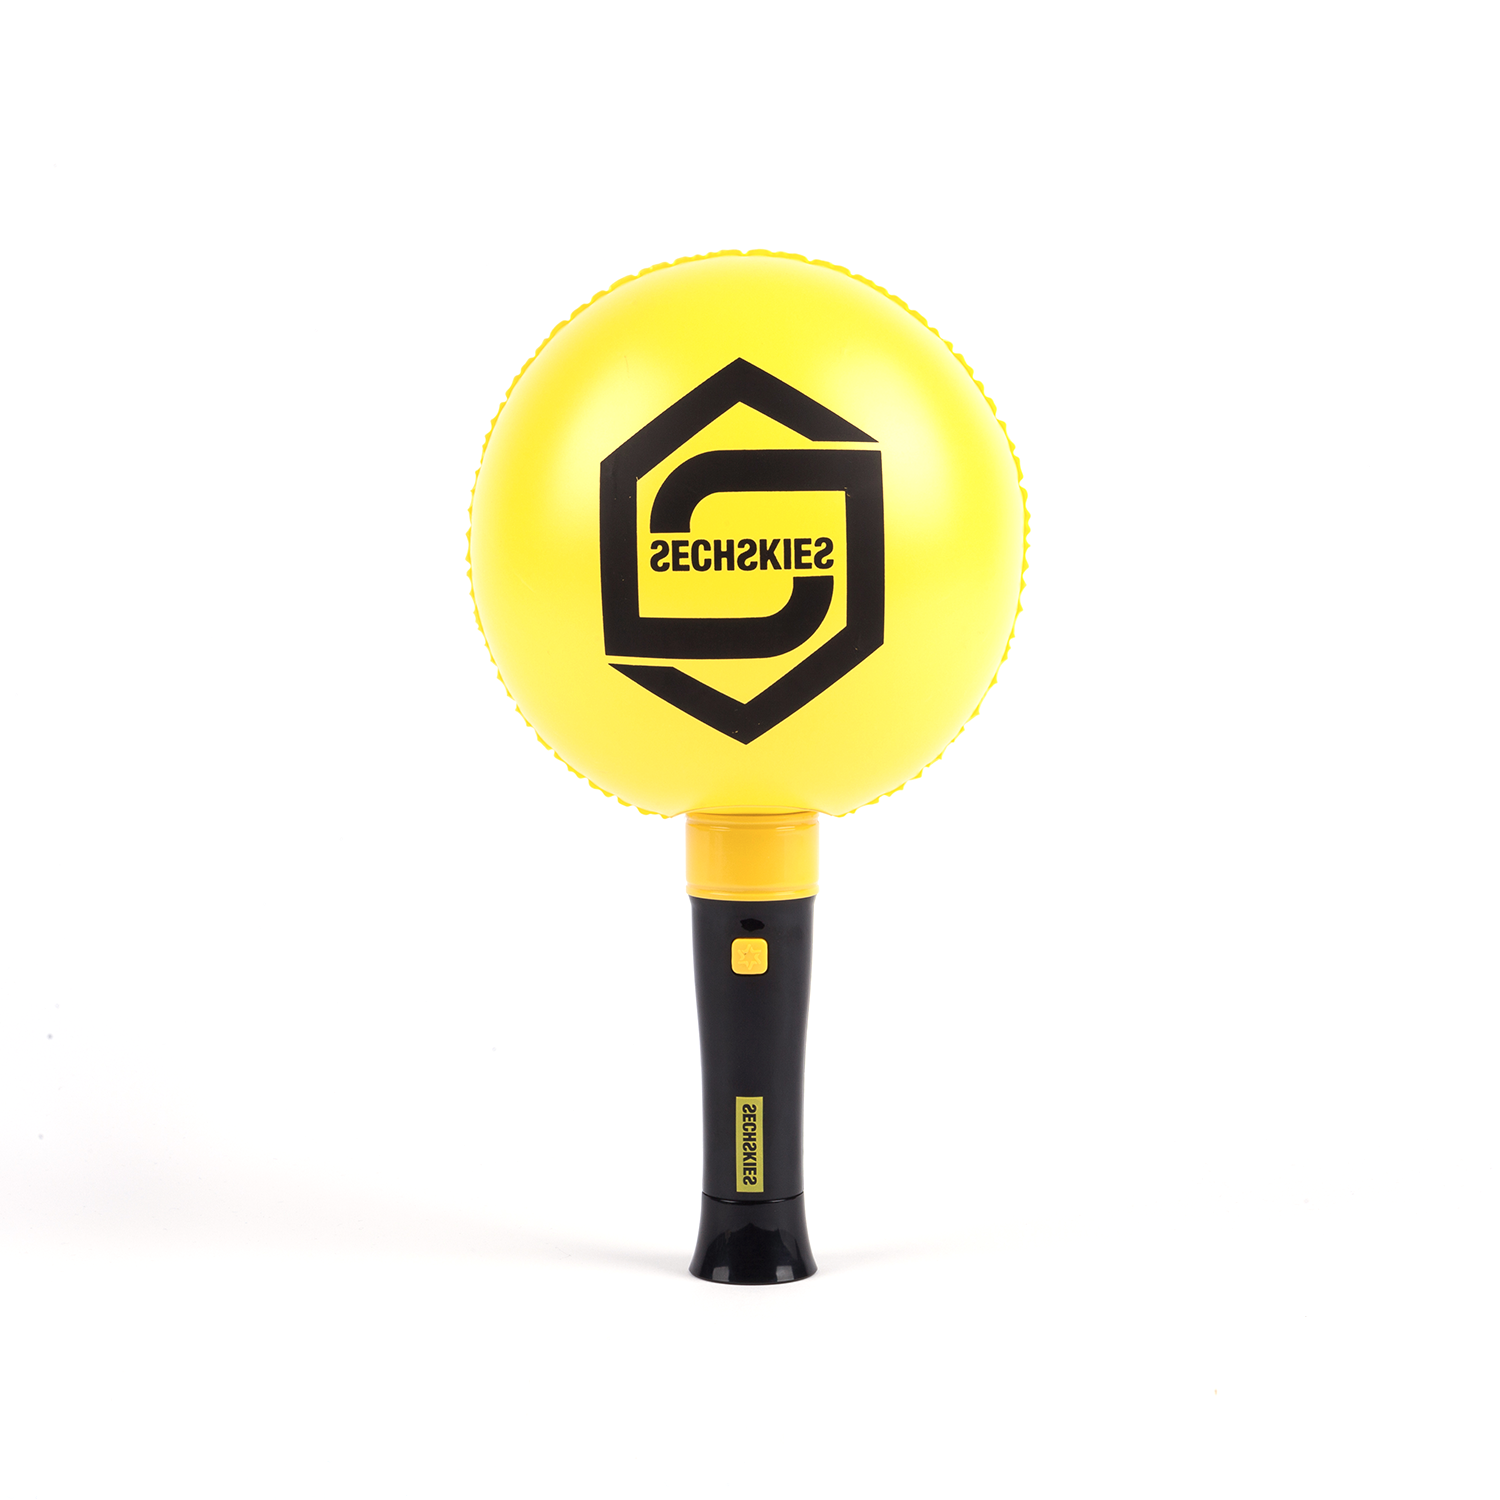 [YN] SECHSKIES OFFICIAL LIGHT STICK